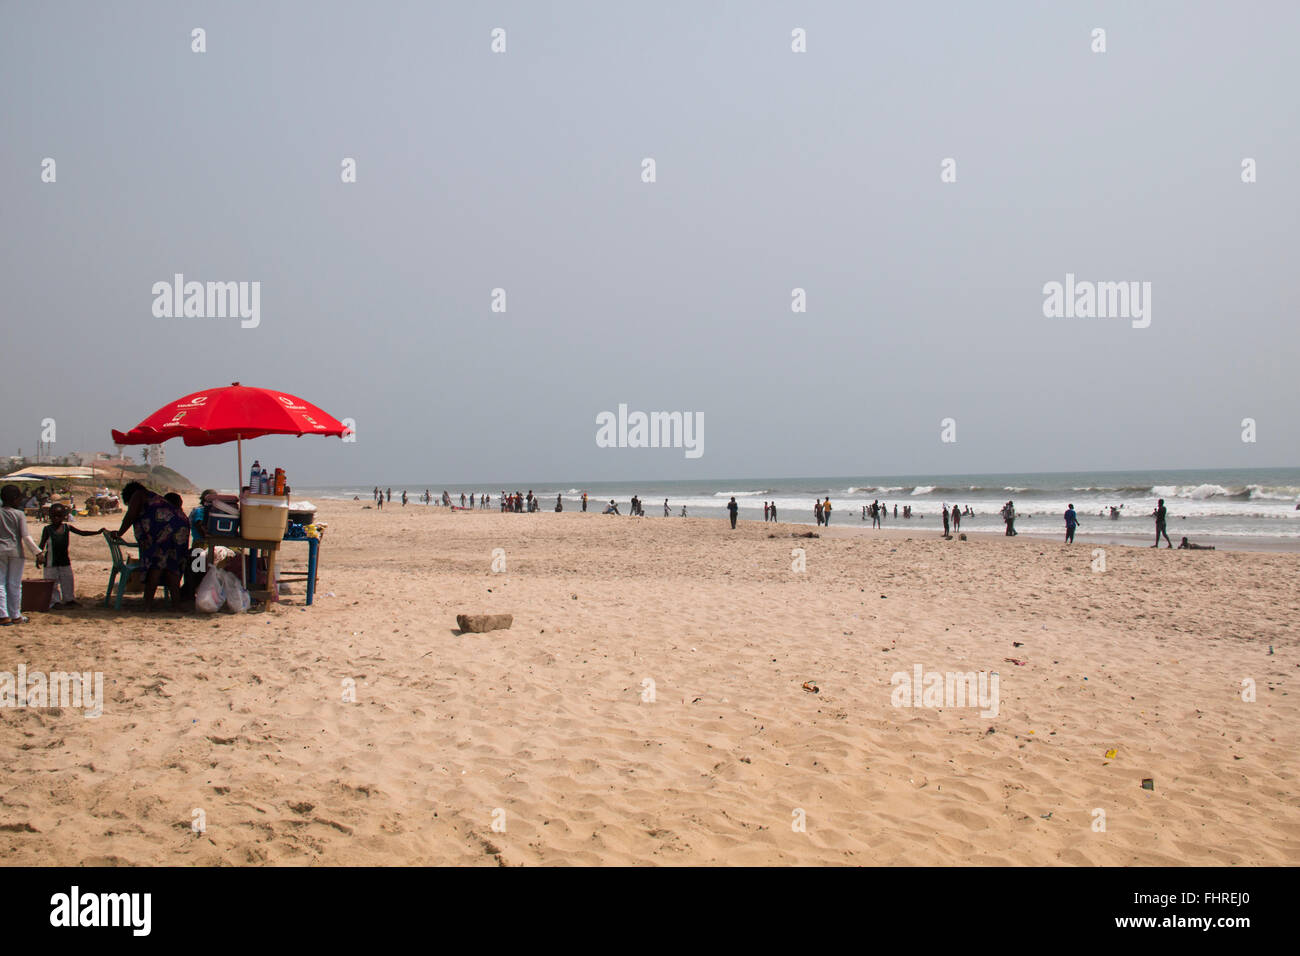 ACCRA, GHANA - JANUARY 2016: Food stall surrounded by people on the beach in Accra, Ghana at the Gulf of Guinea - Stock Image